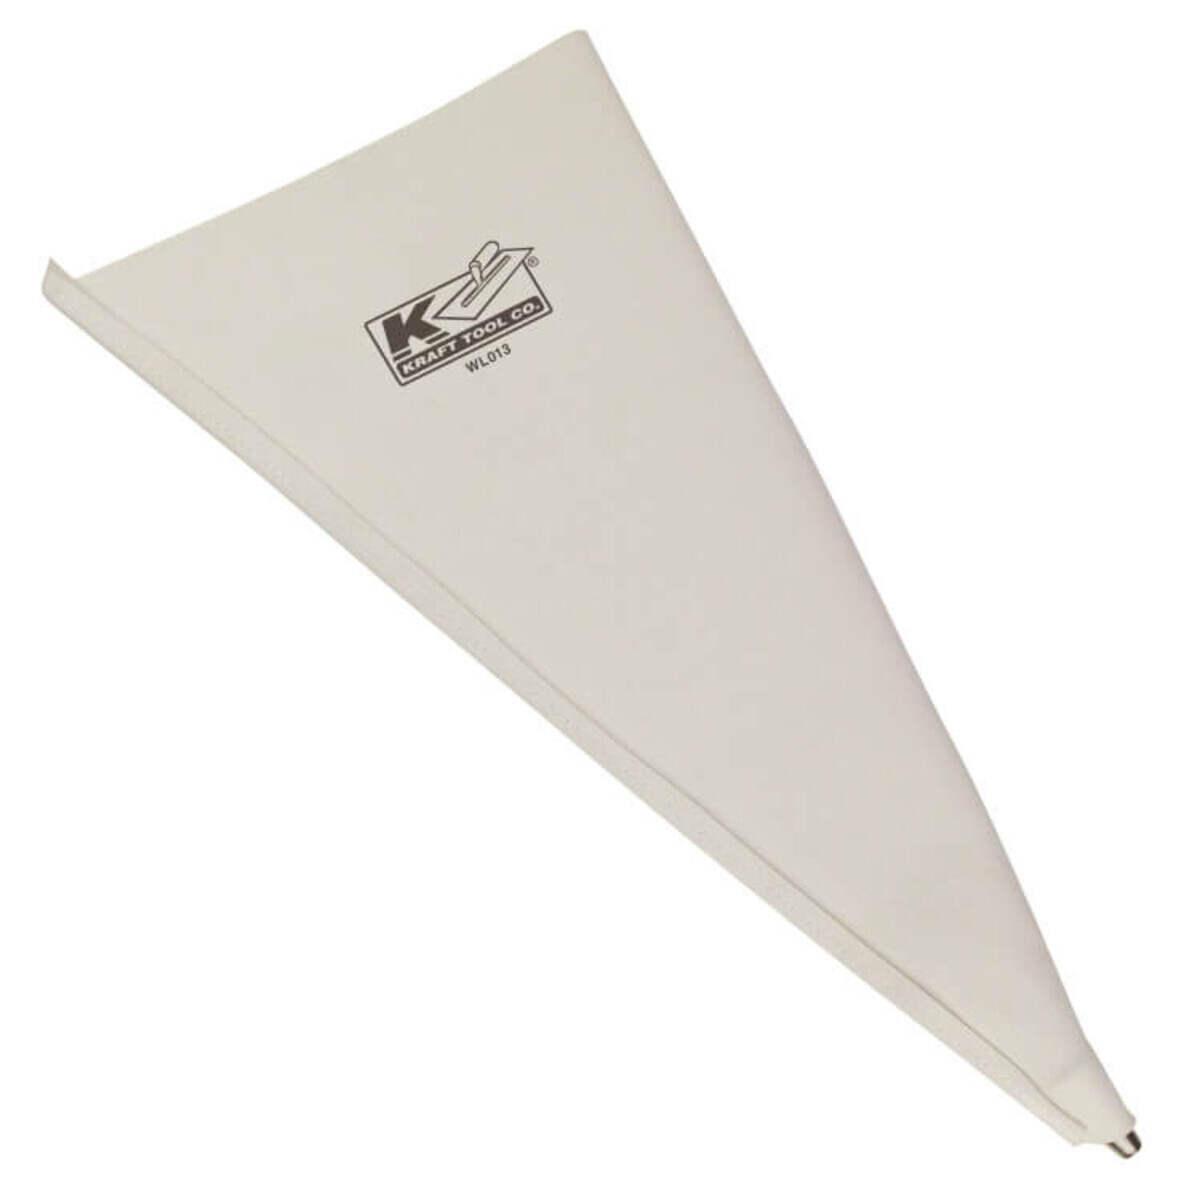 wl013 kraft heavy duty vinyl grout and mortar bag includes a metal tip for easy use.